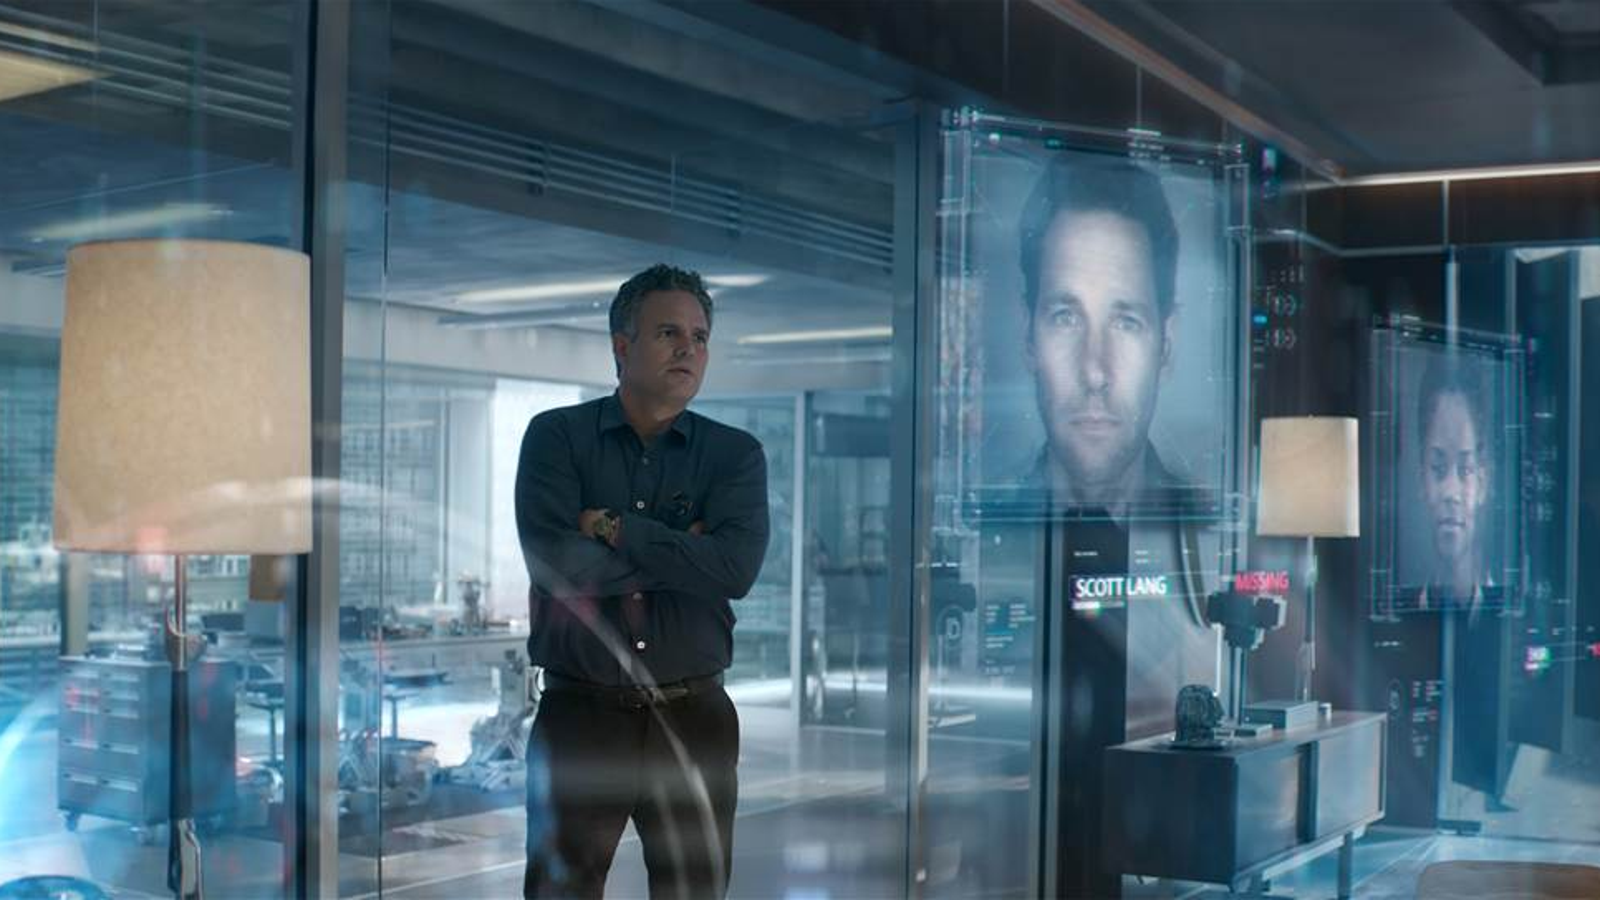 This Avengers: Endgame Mashup Trailer Recalls a Decade of Hype